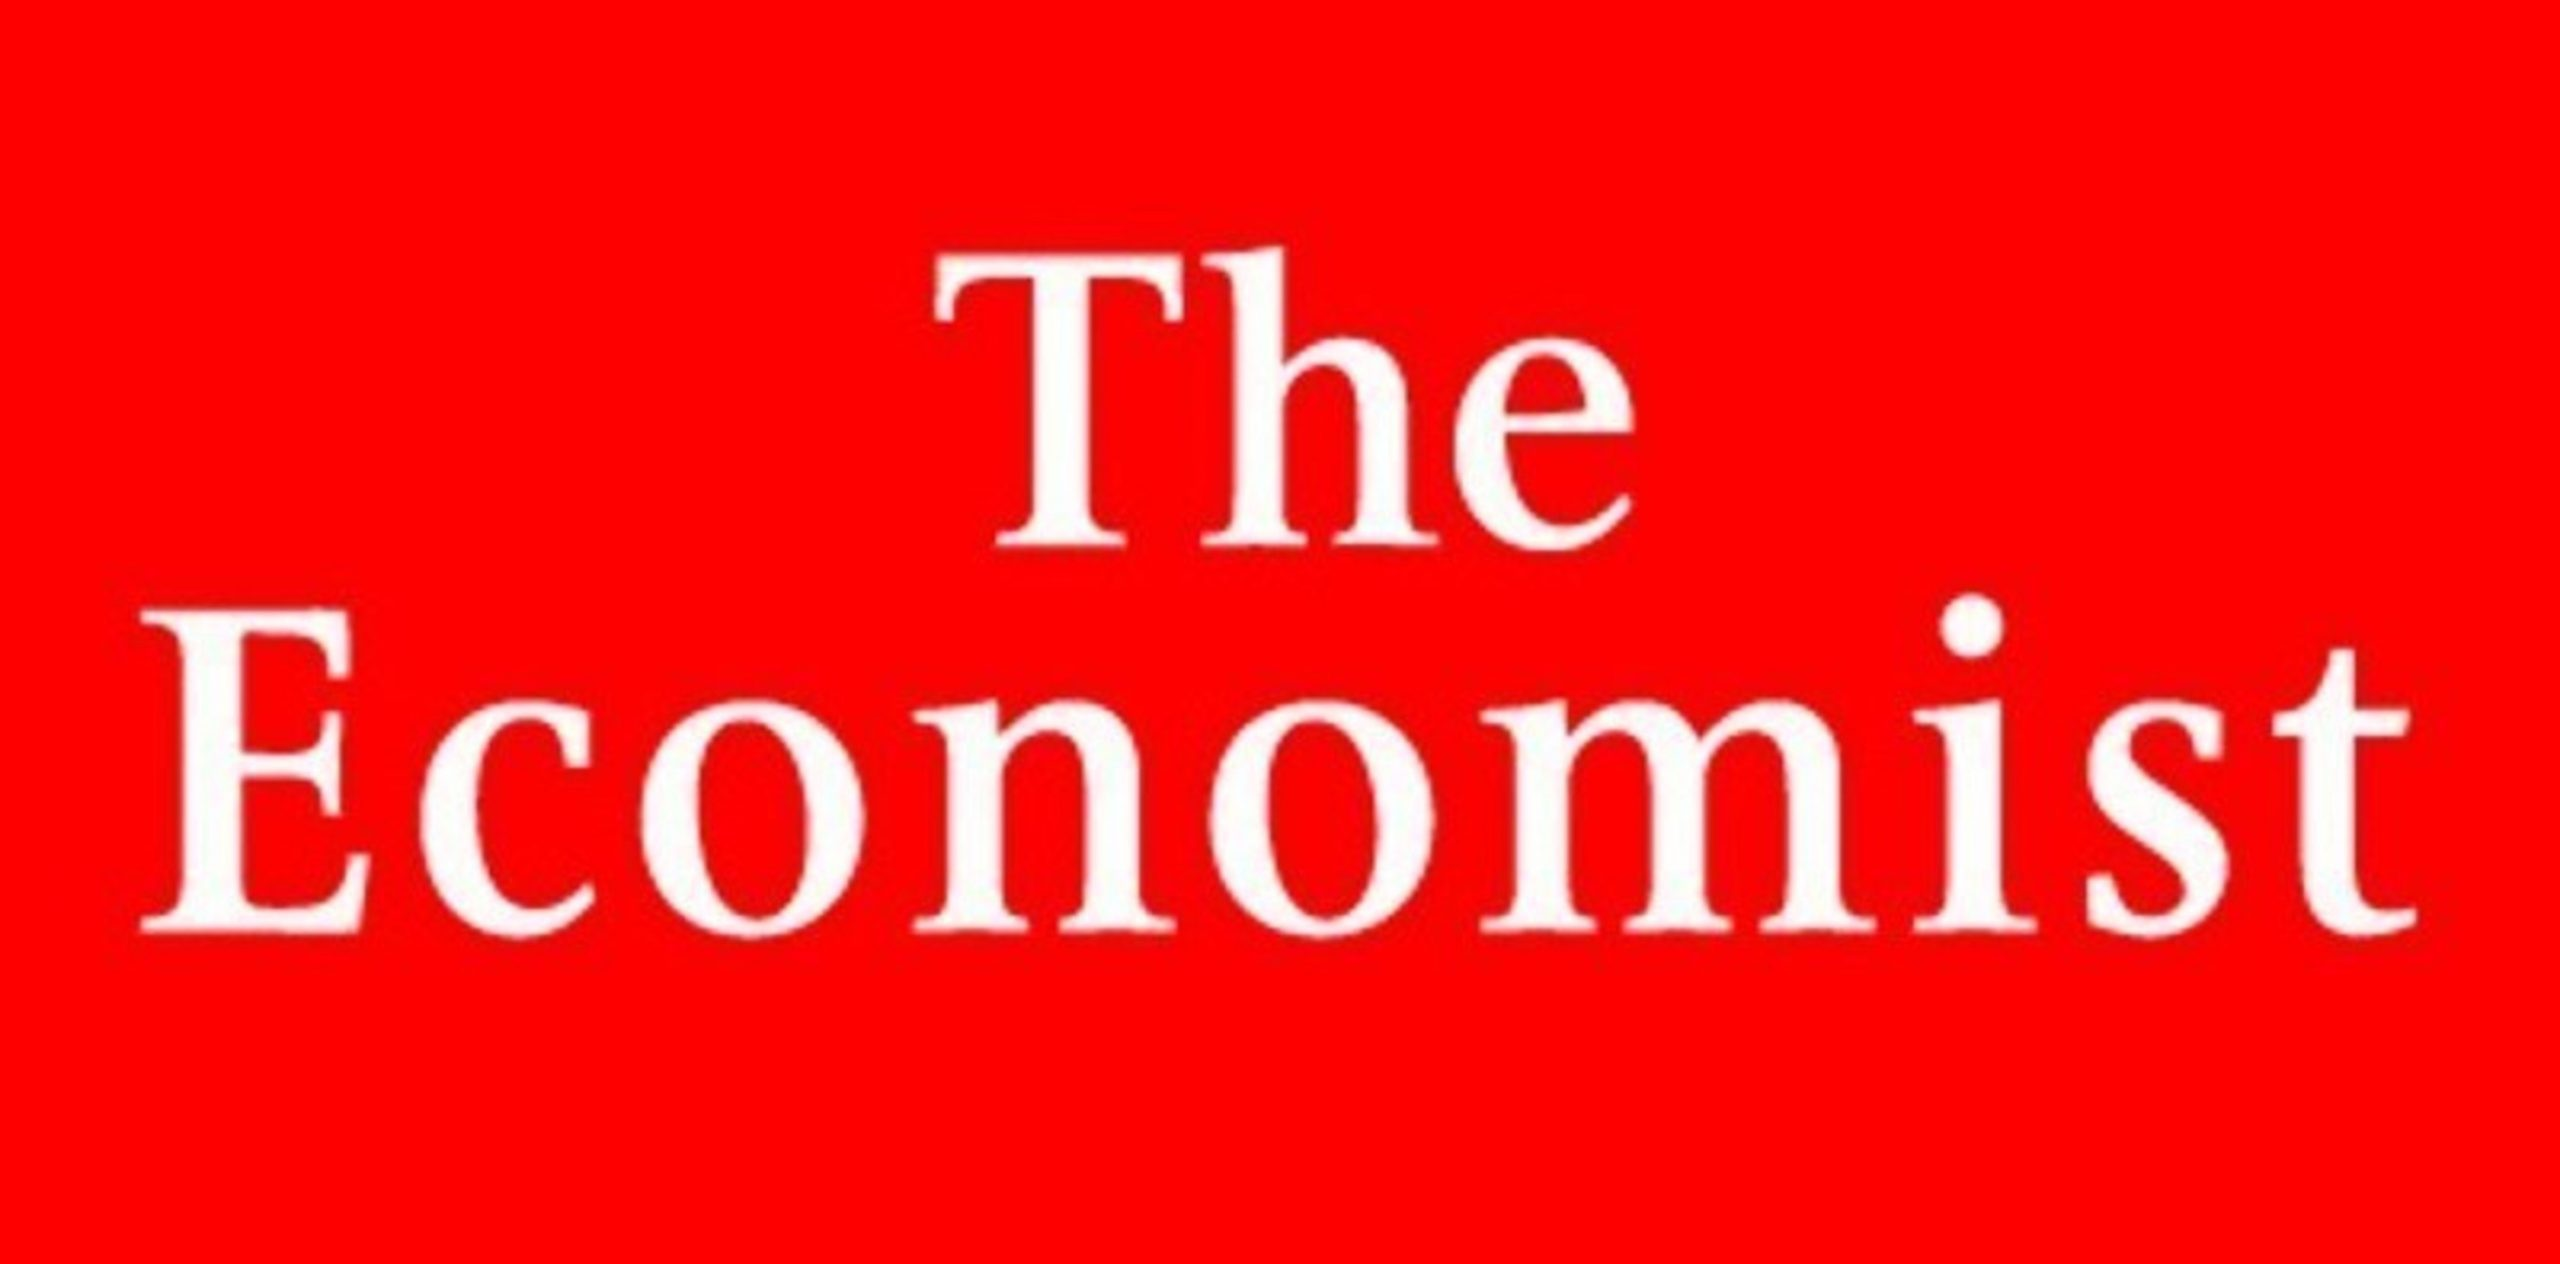 How to get featured in The Economist